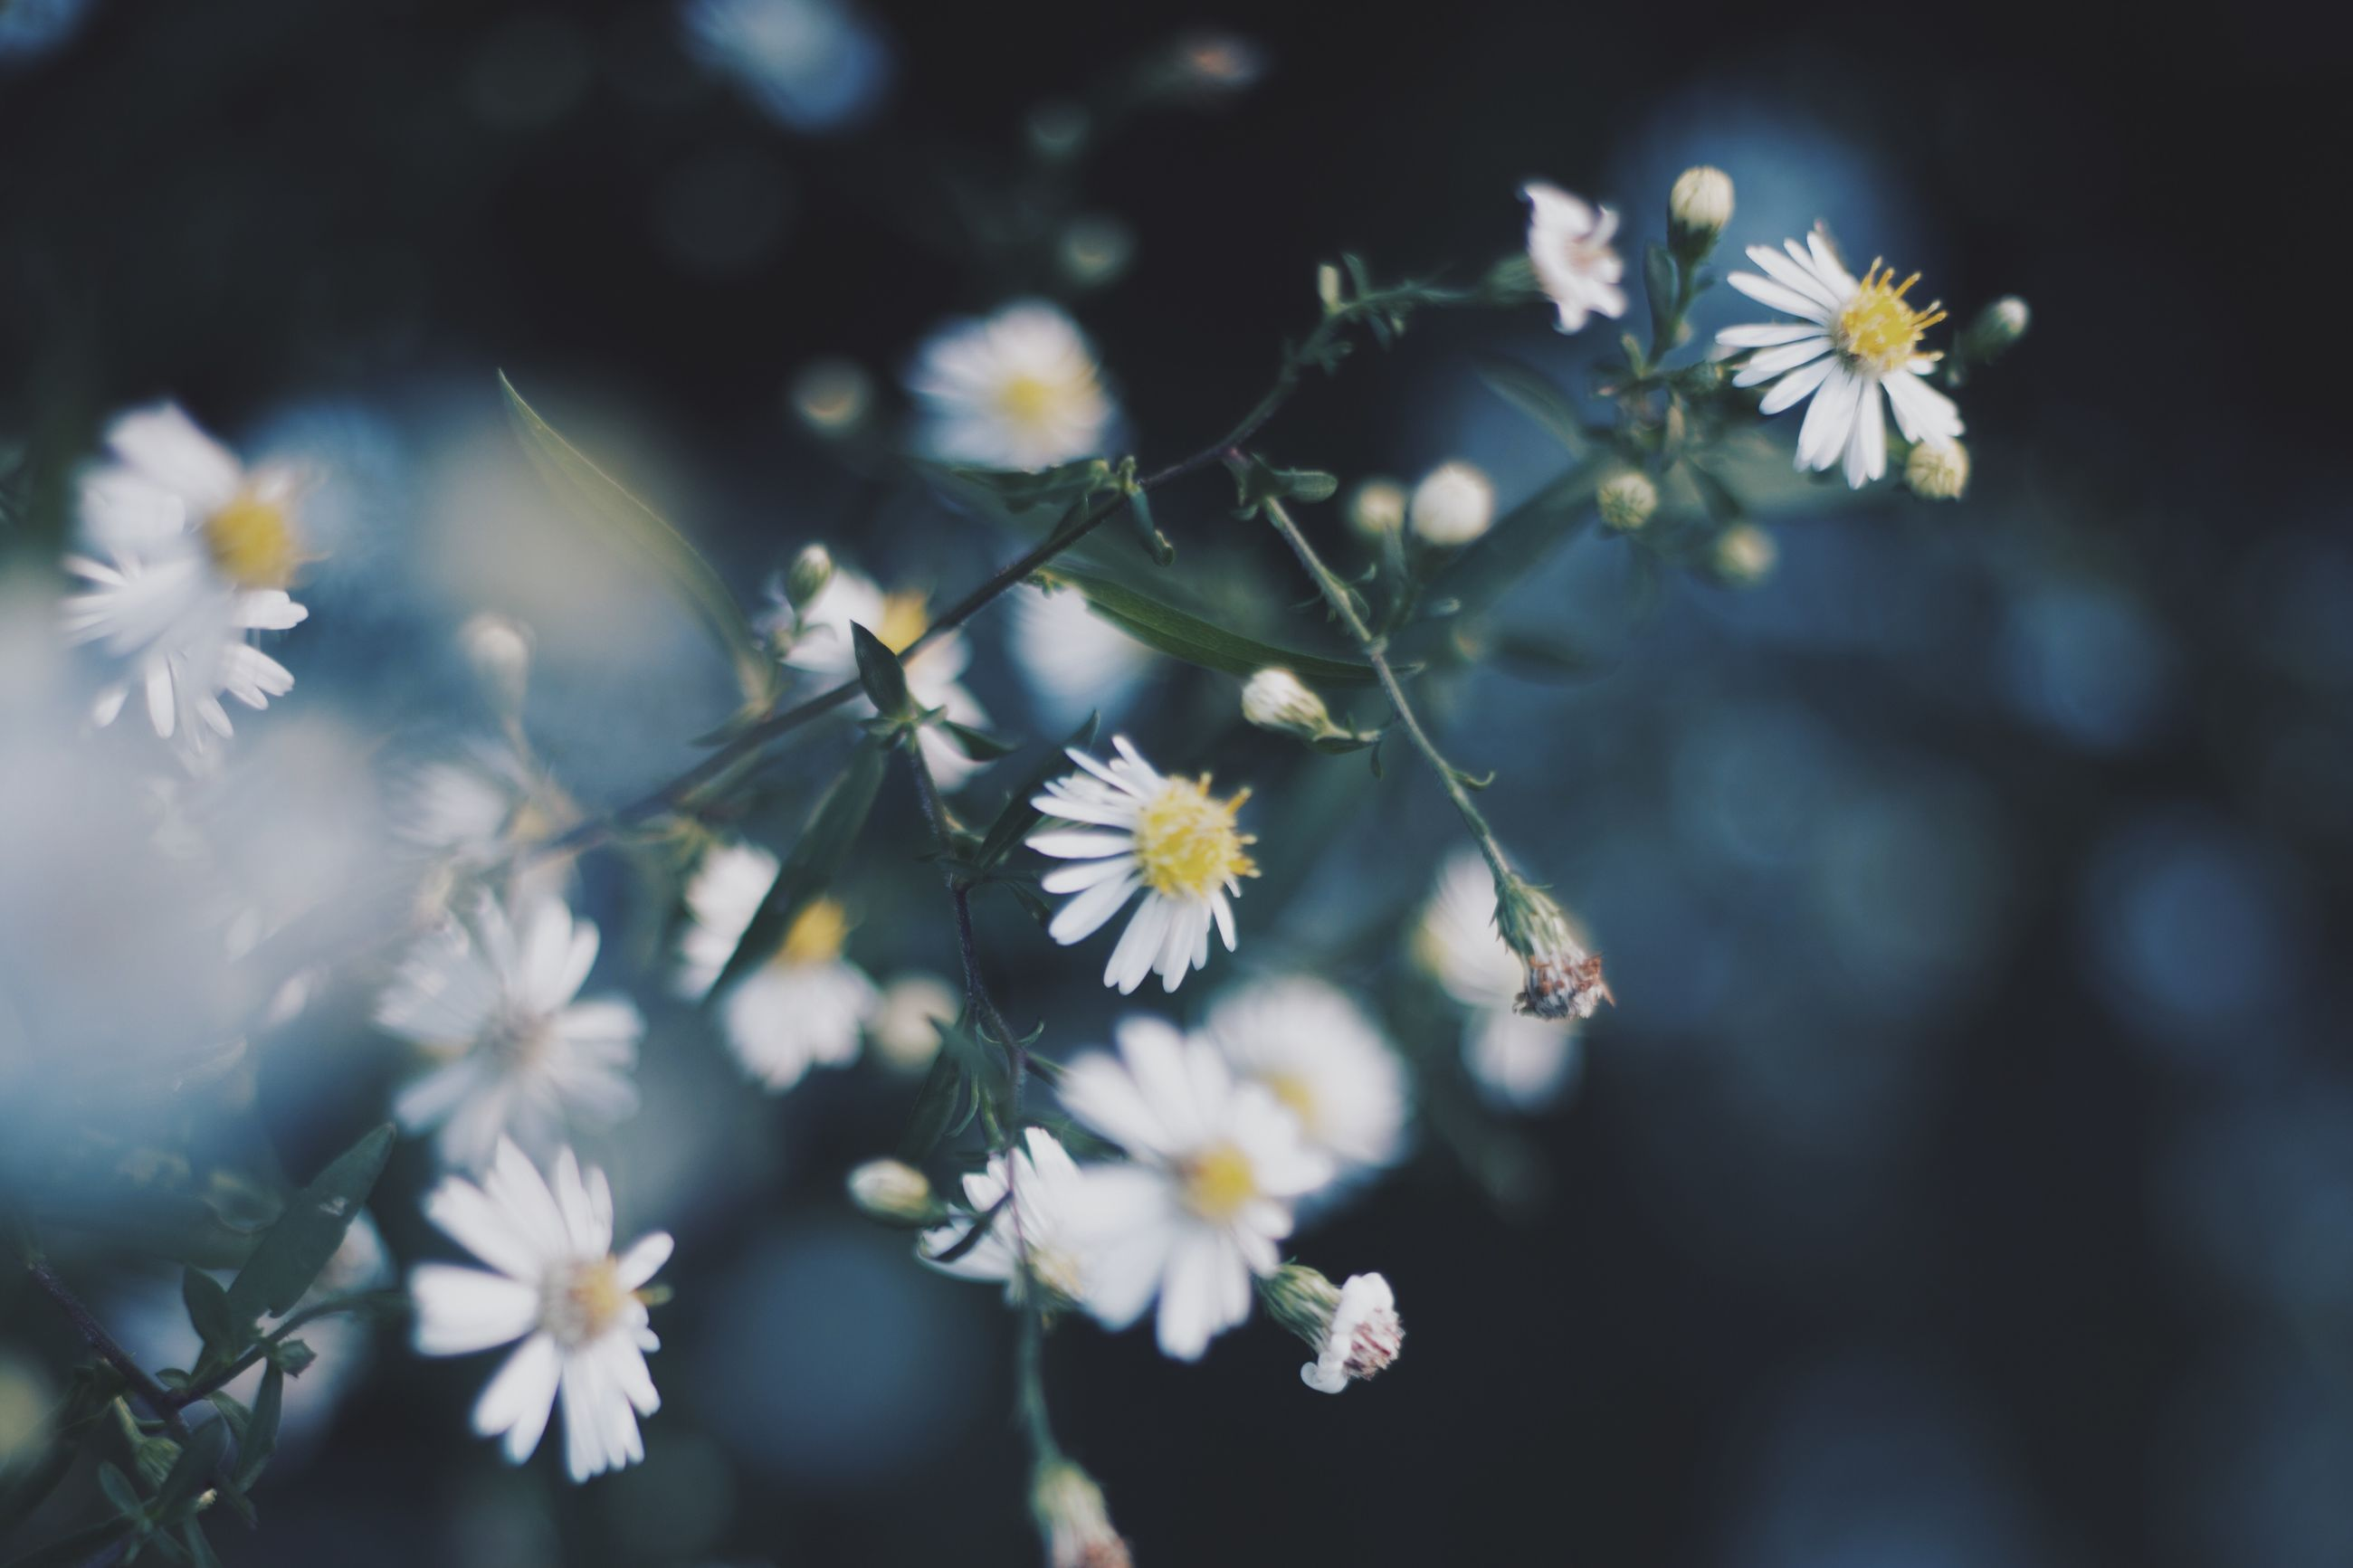 flower, freshness, petal, fragility, white color, growth, flower head, beauty in nature, focus on foreground, blooming, nature, close-up, in bloom, plant, pollen, blossom, daisy, selective focus, stem, white